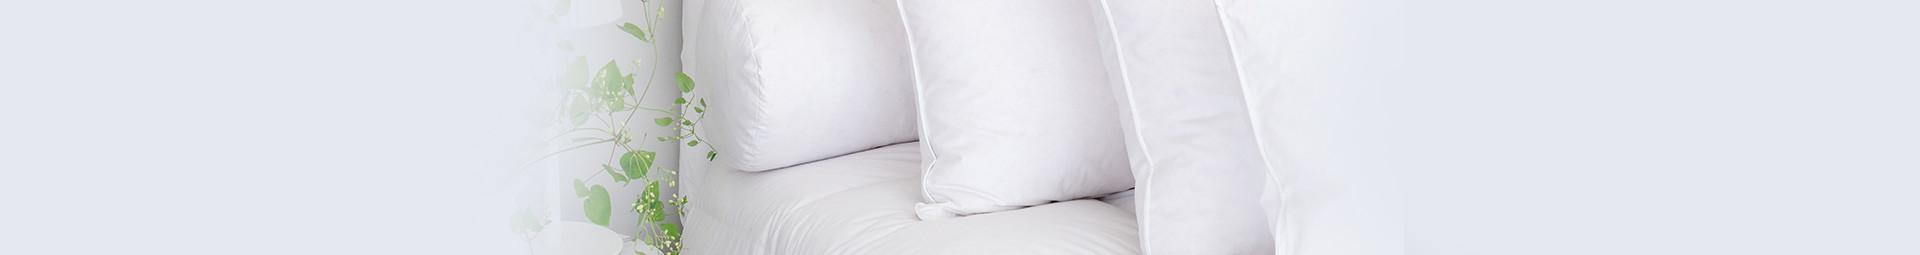 Ergonomic pillows with French silver duck down filling, Ergonomic pillows for all sleepers - Pyrenex